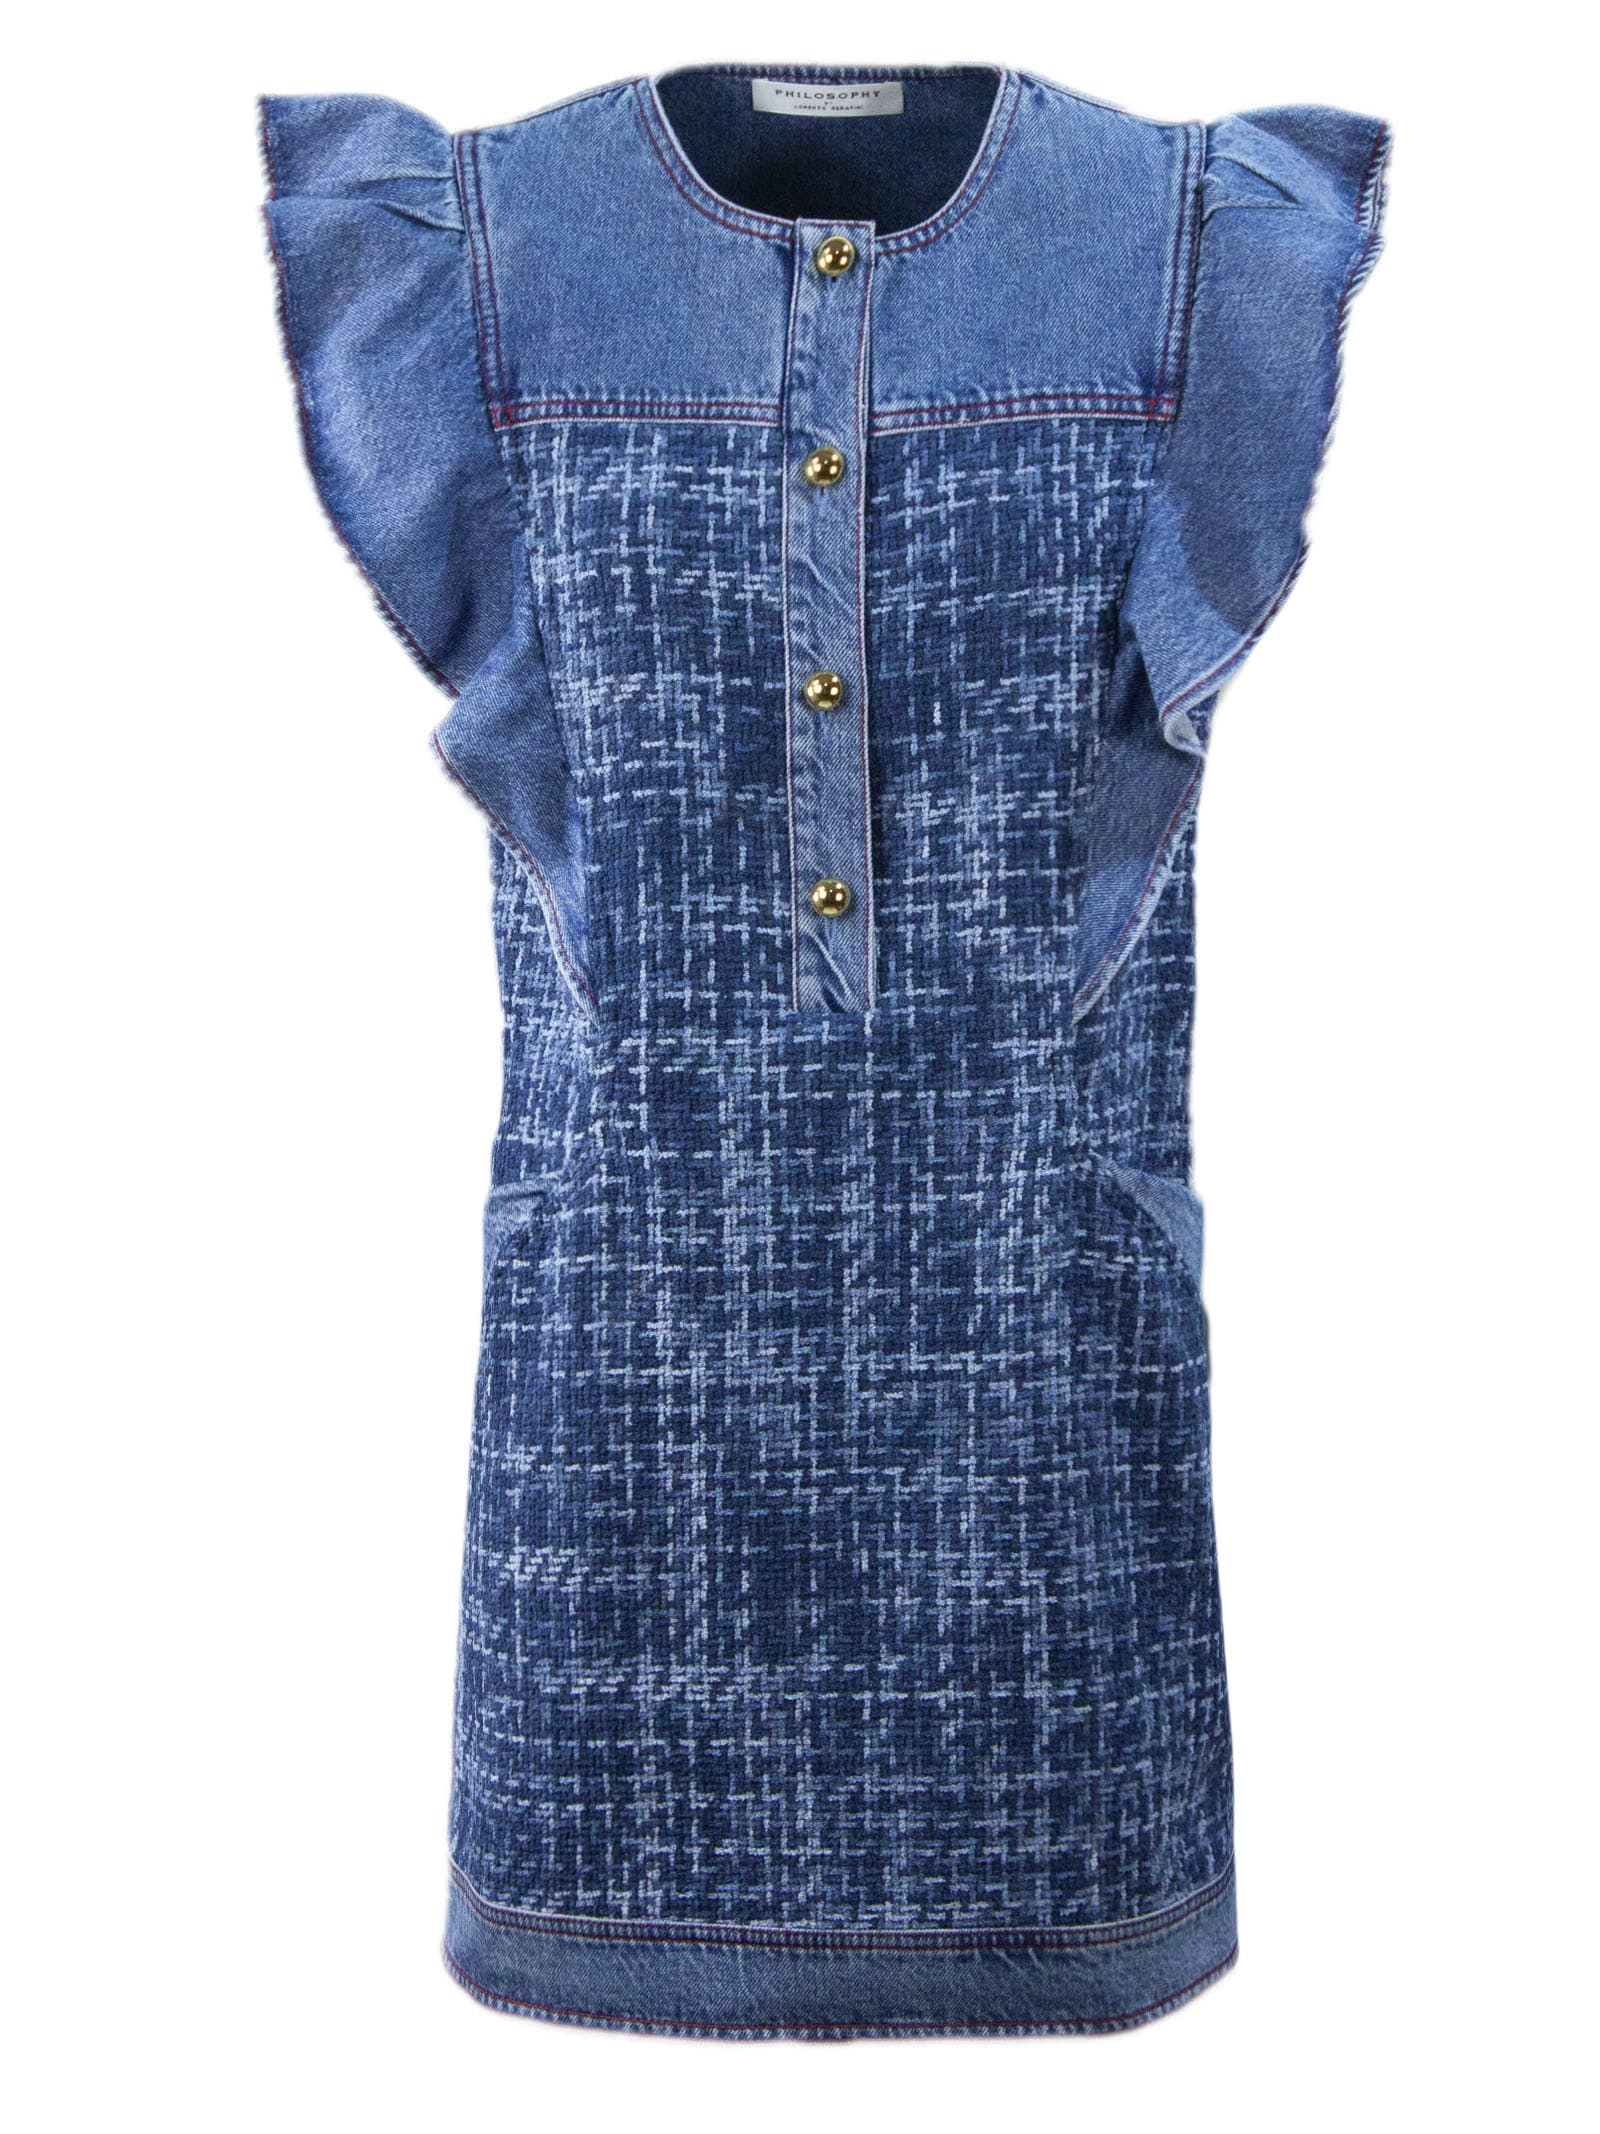 Buy Philosophy di Lorenzo Serafini Dark Blue Denim Dress online, shop Philosophy di Lorenzo Serafini with free shipping